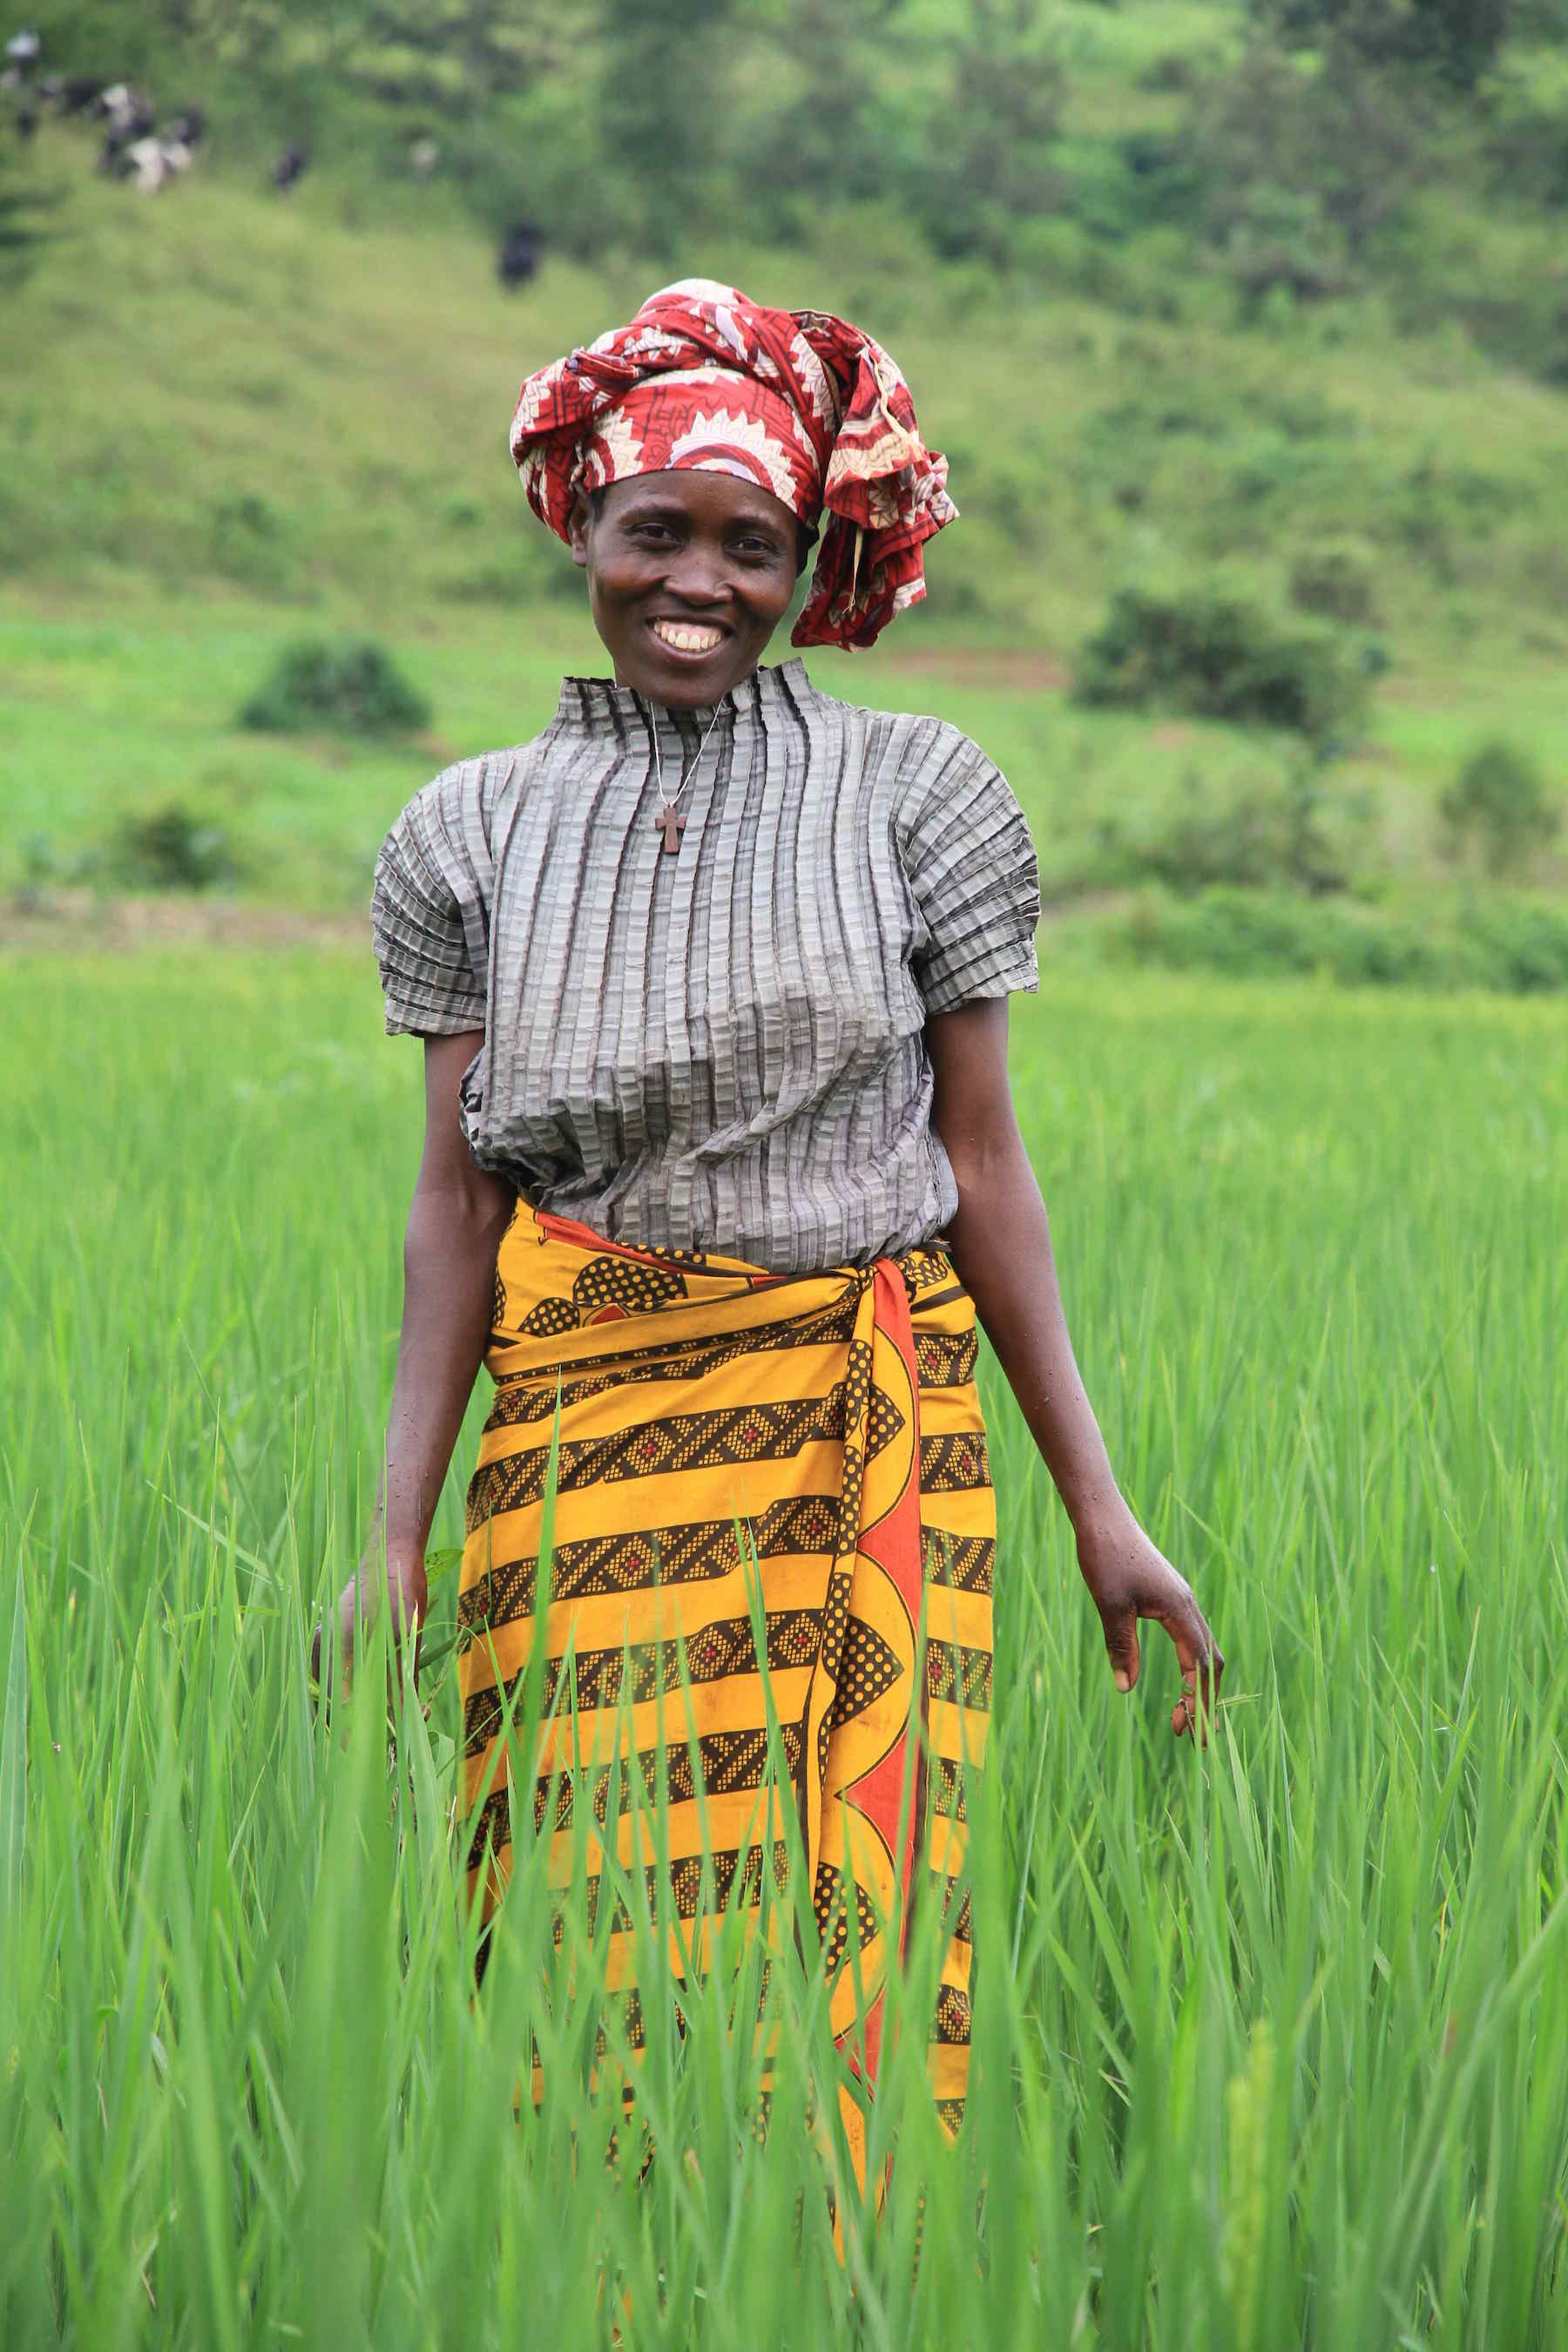 Opportunity clients like rice farmer Eugenie Nyirabagenzi, in Rwamagana, Rwanda, use microloans to grow their businesses and buy more seeds to produce better crop yields to feed their families and their communities.